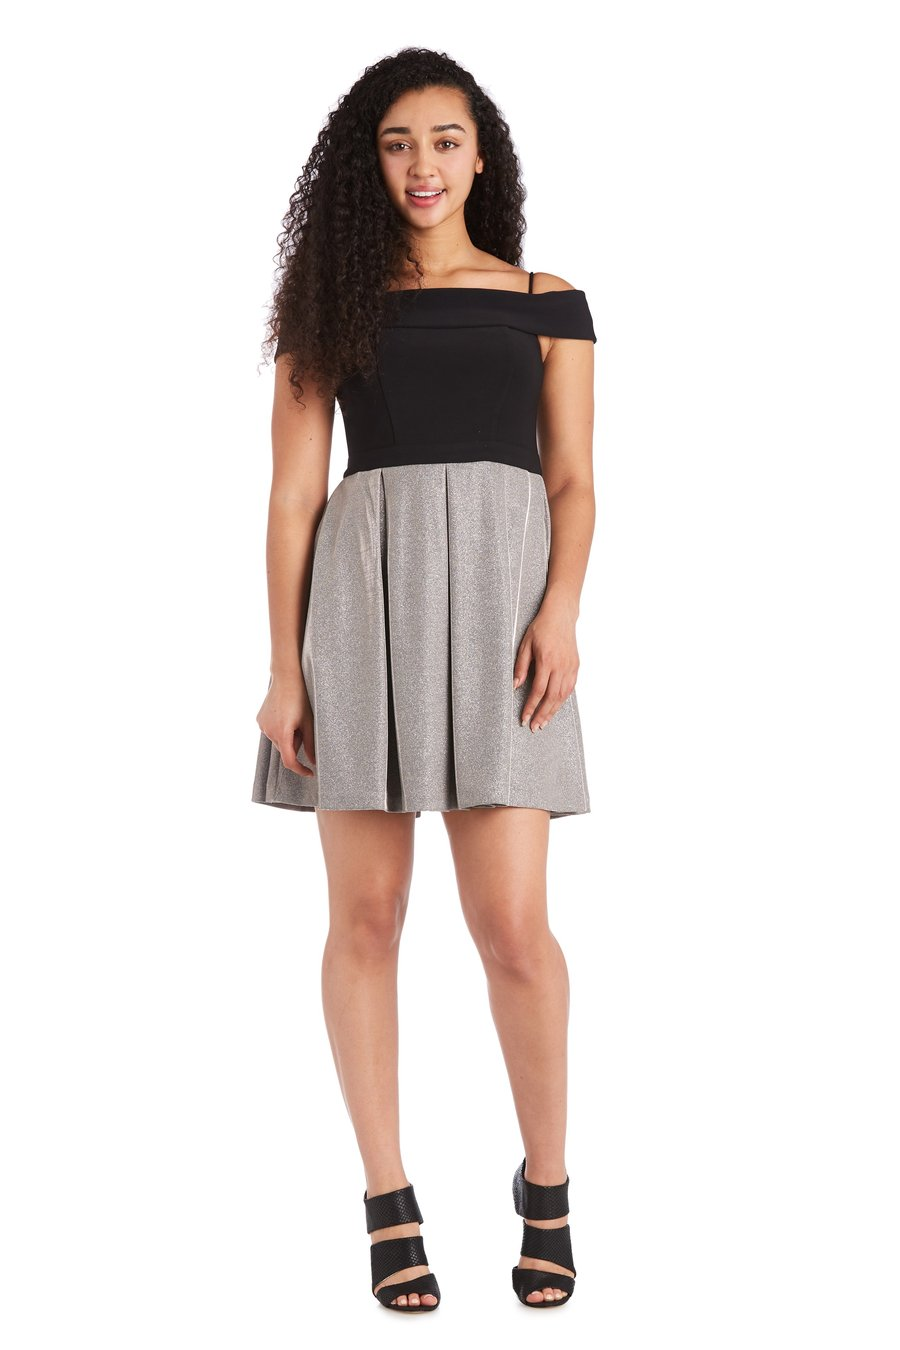 Morgan & Co. Off the Shoulder Bodice with Short Shimmer Skirt